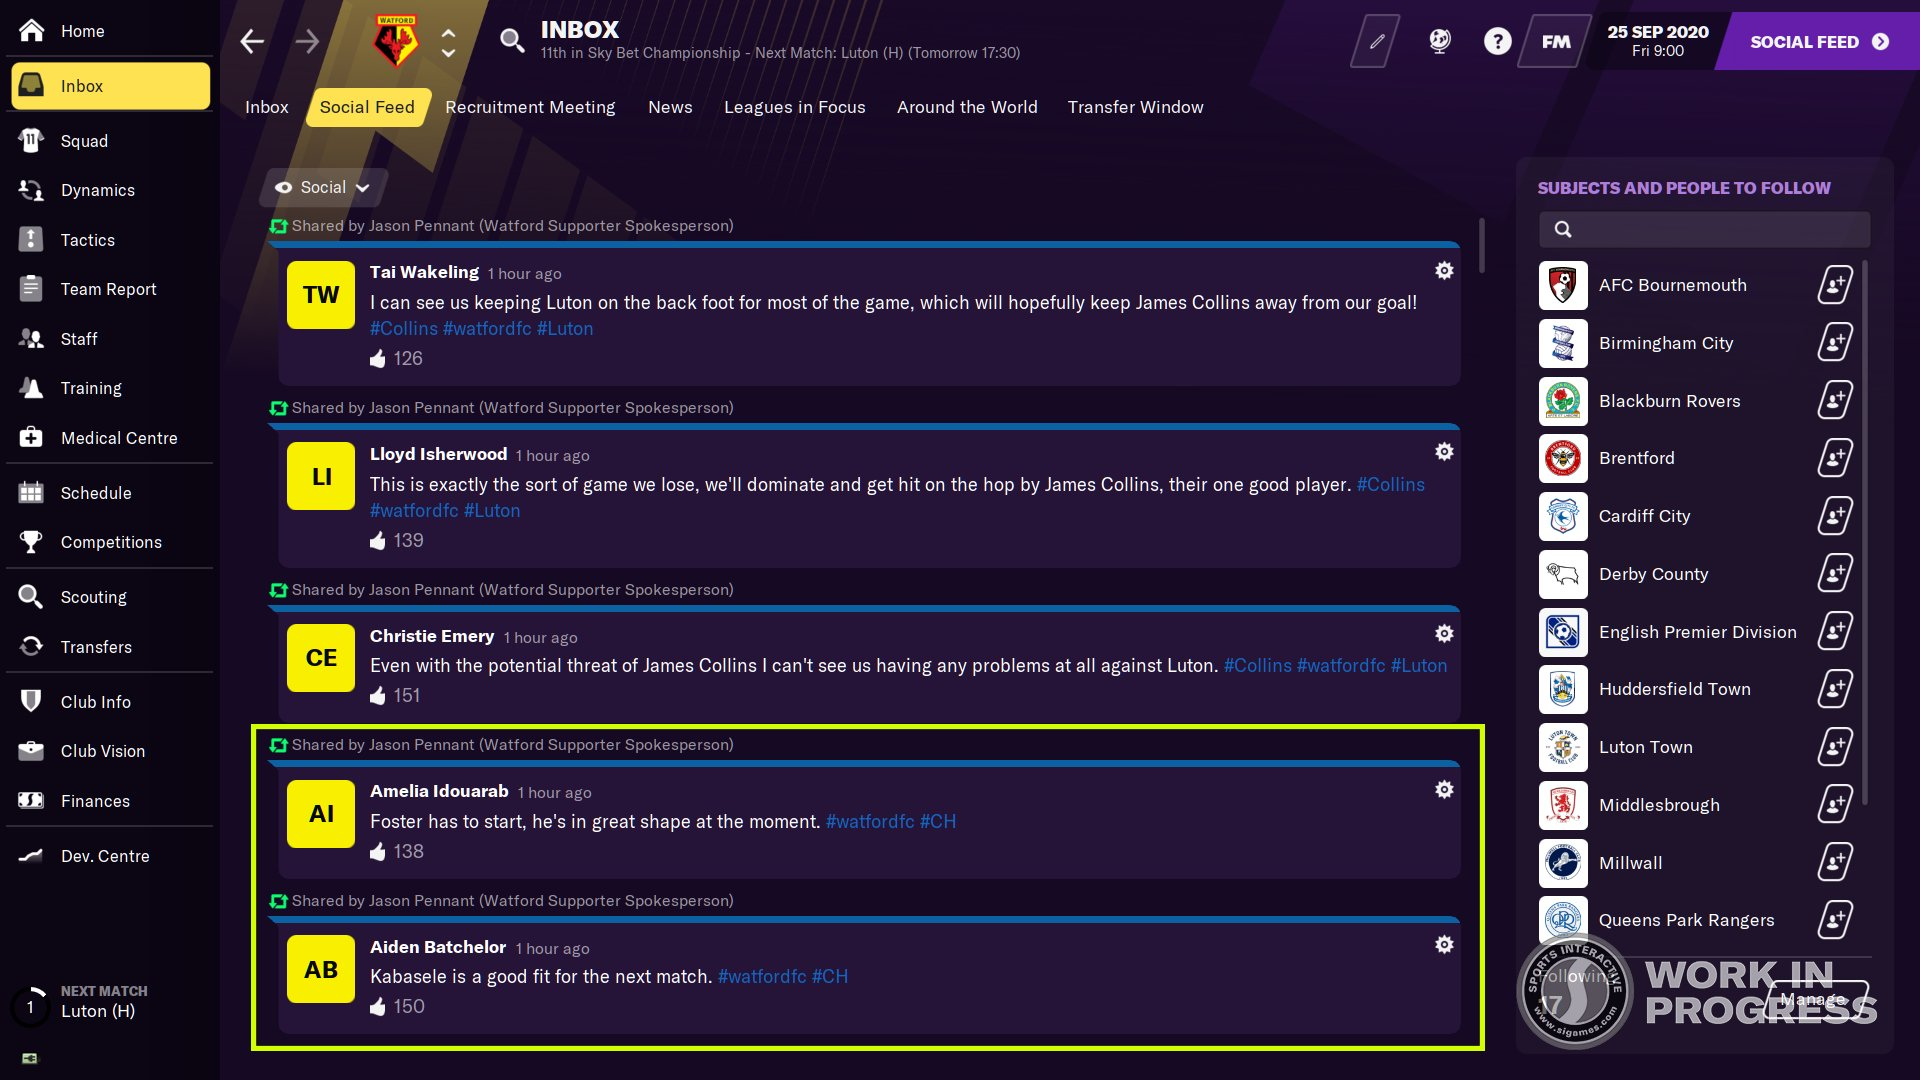 Football Manager 2021 Social media rumours